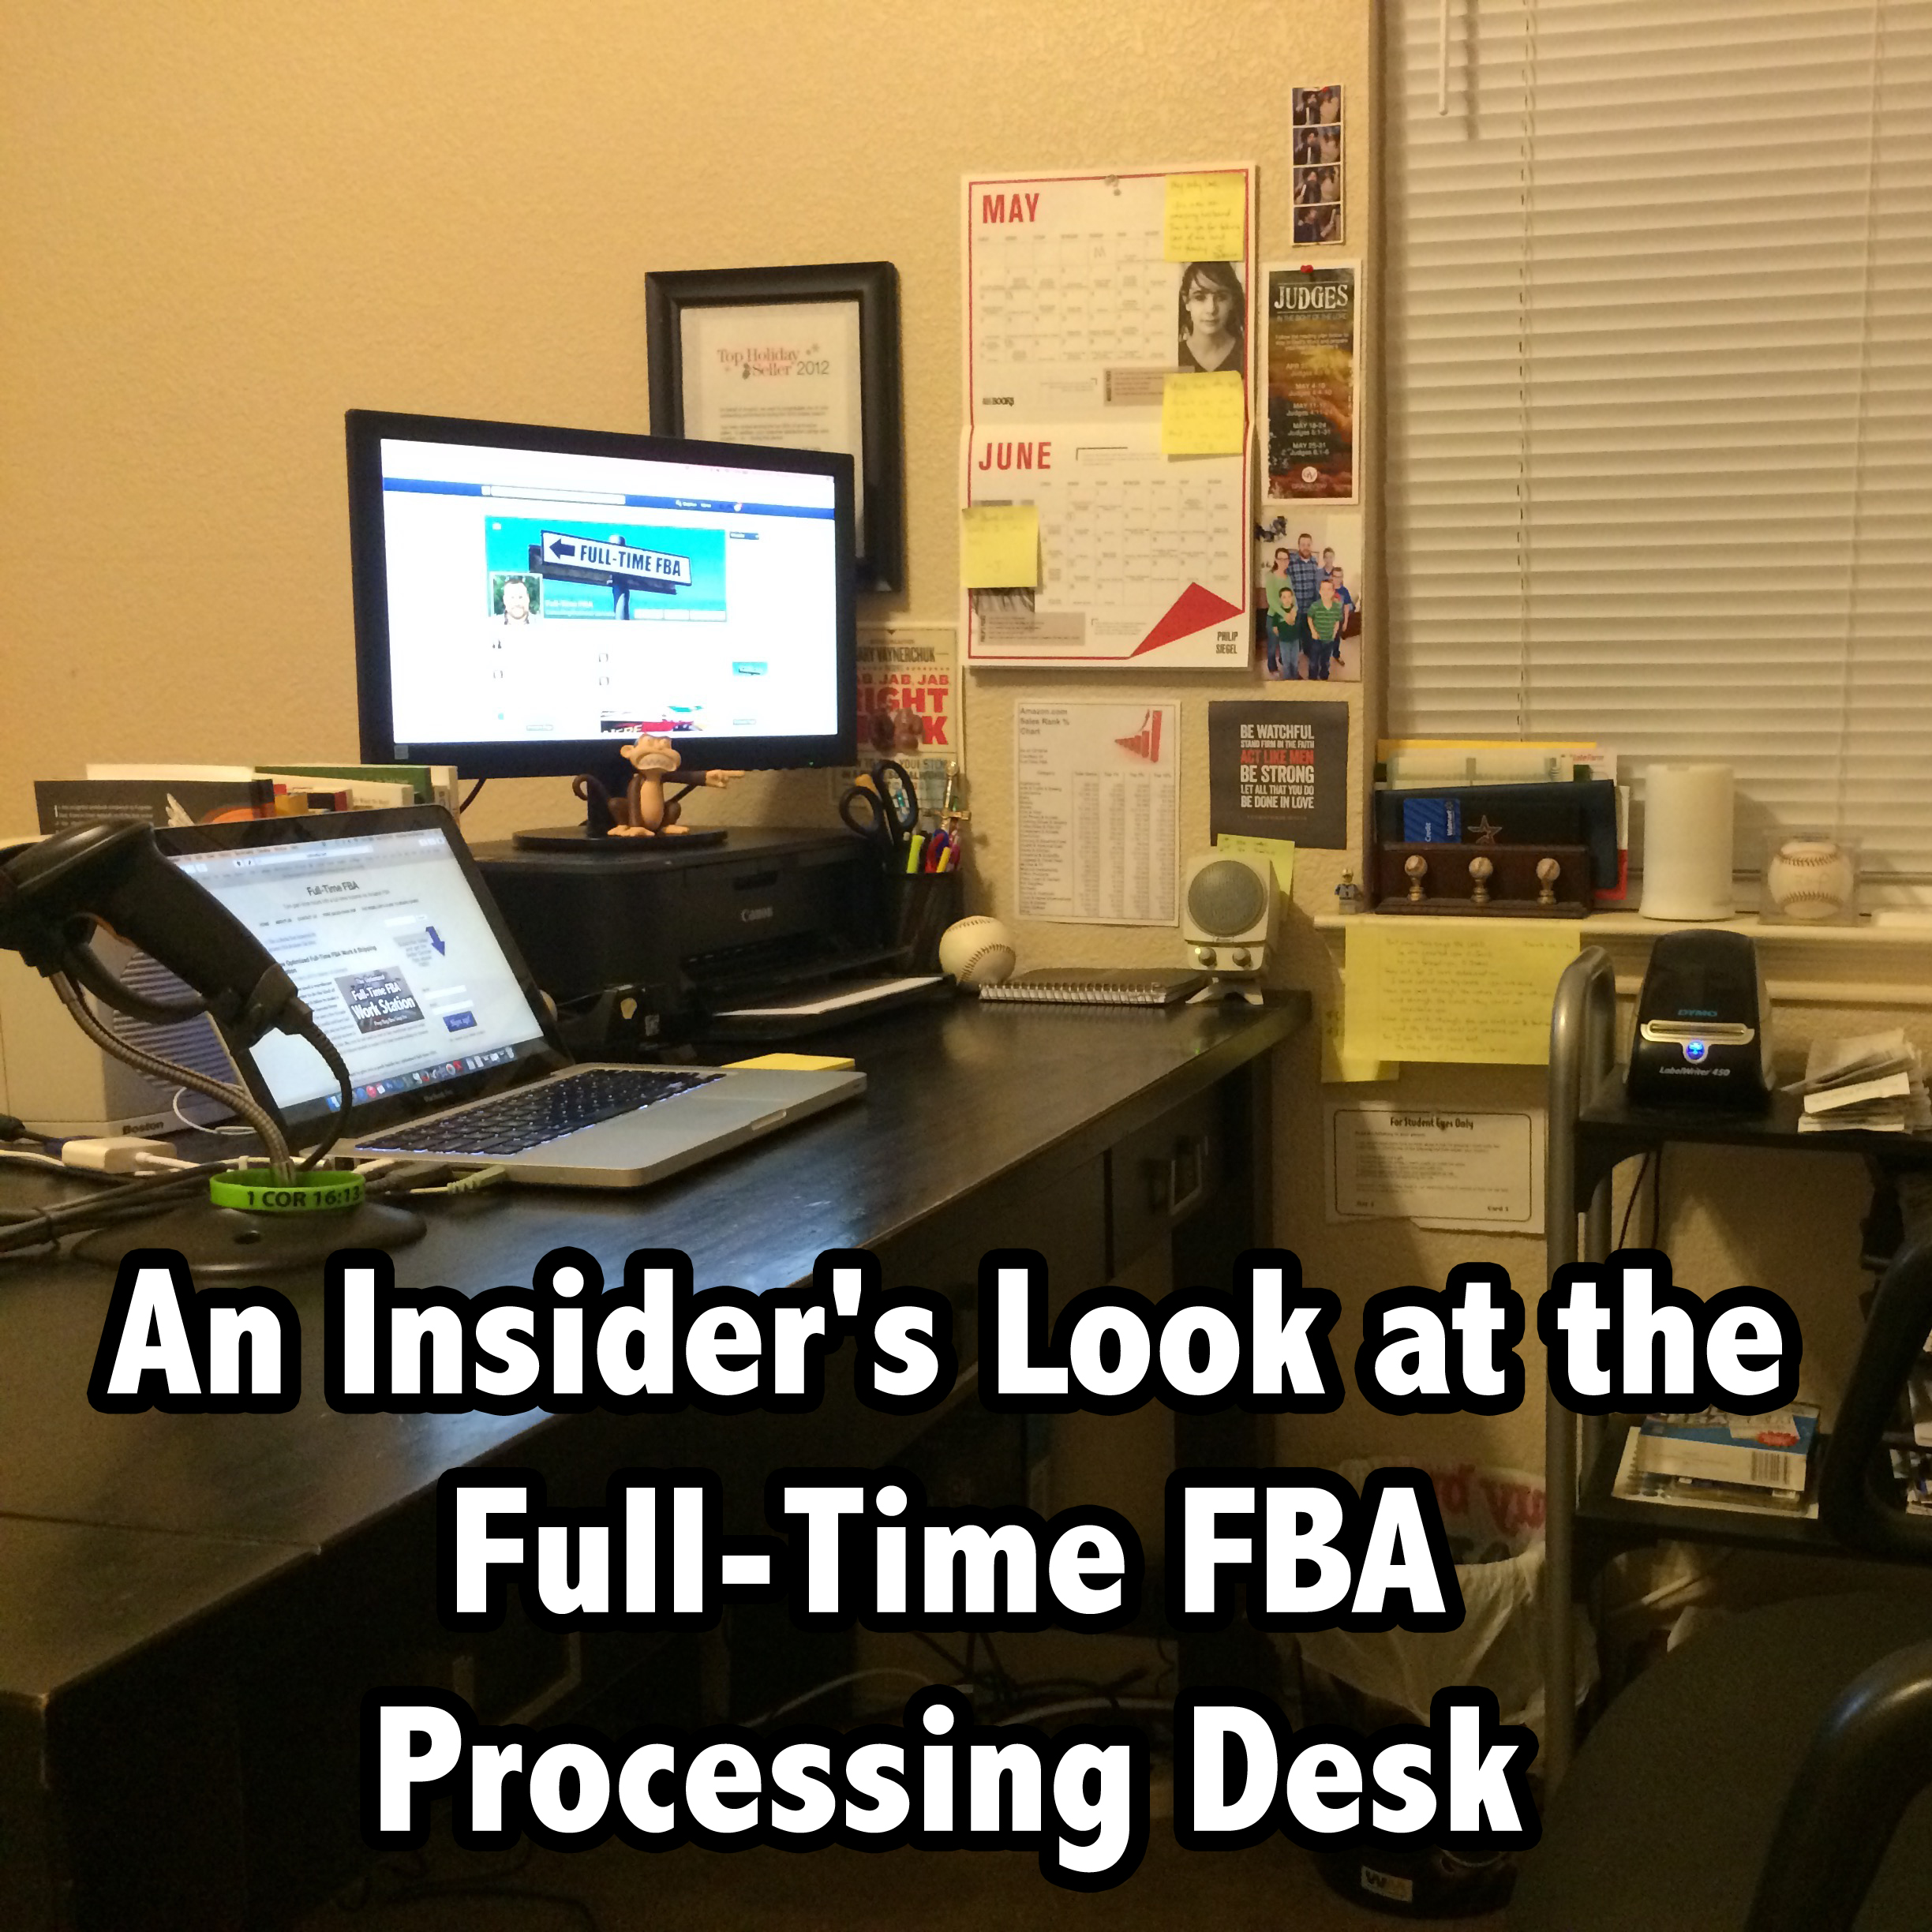 An Insider's Look at the Full-Time FBA Processing Desk